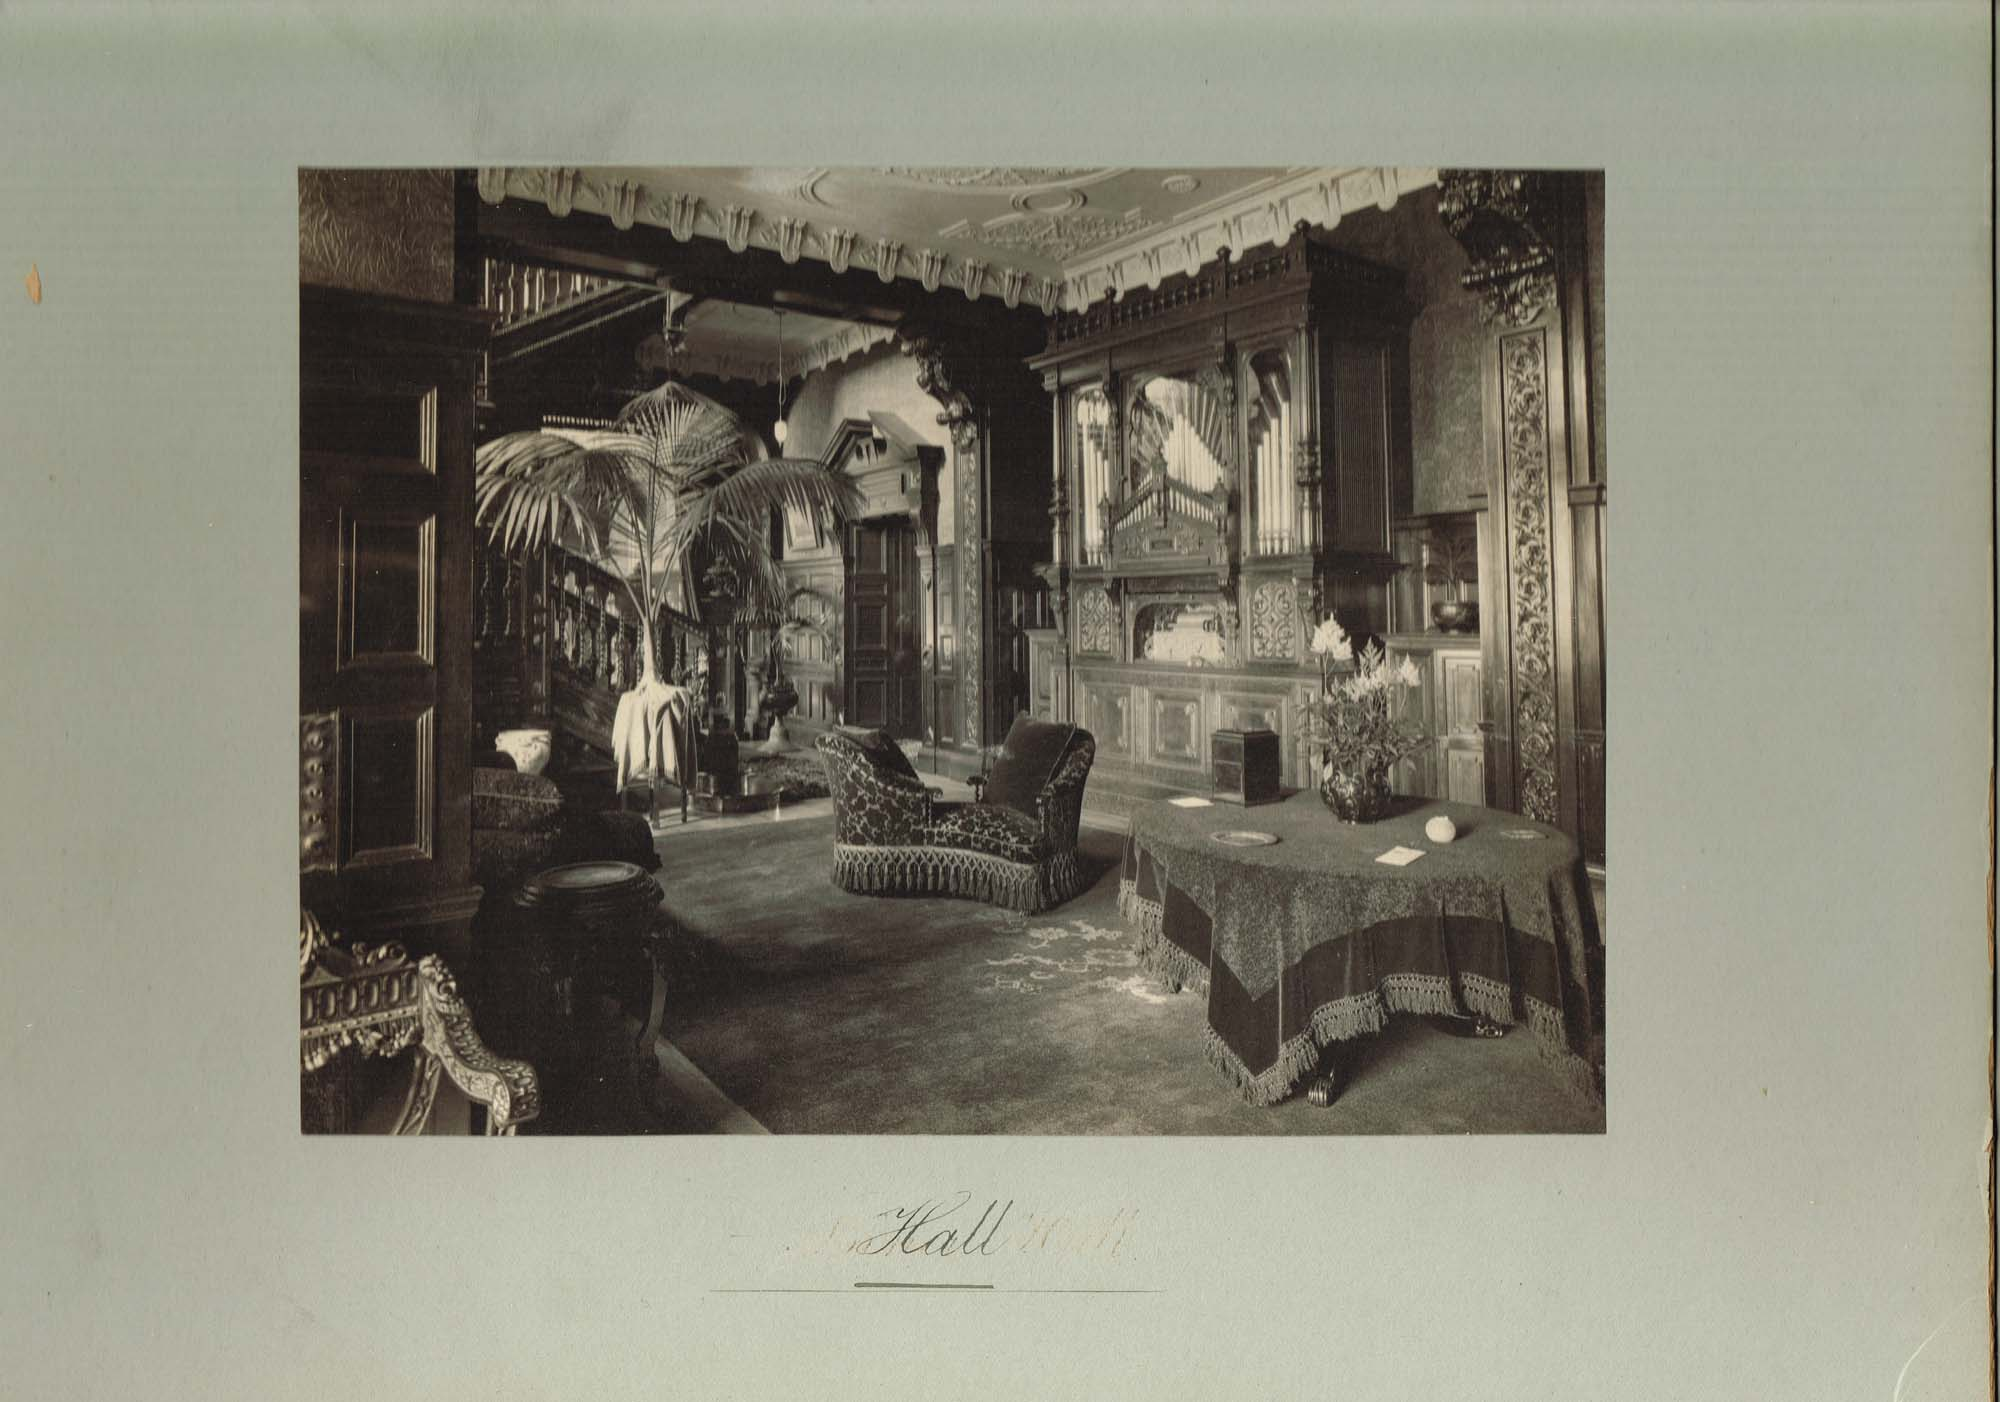 Black and white photograph of the Hall at Ralston